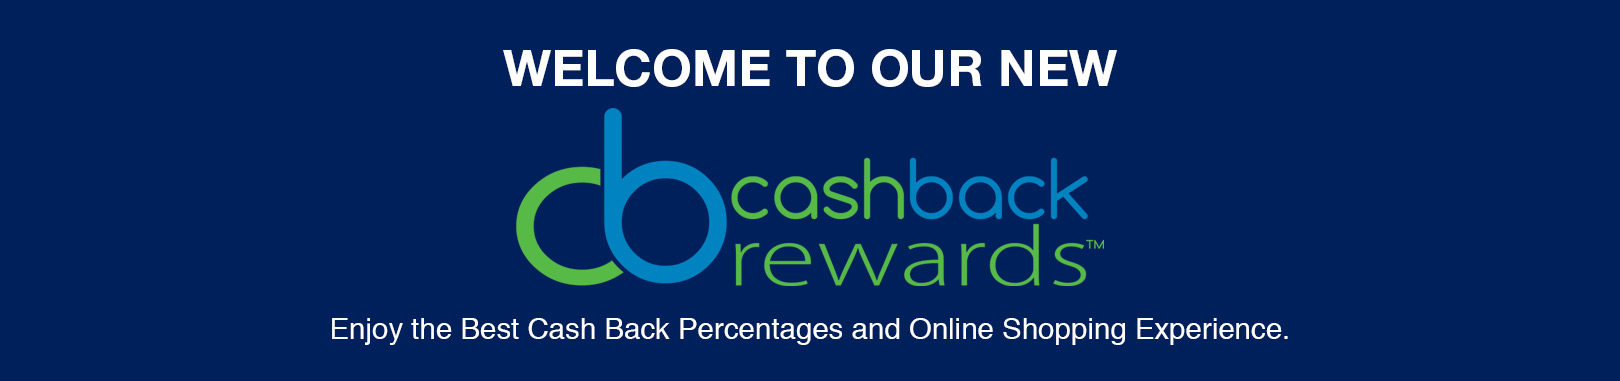 Welcome to our new Cash Back Rewards. Enjoy the Best Cash Back Percentages and Online Shopping Experience.